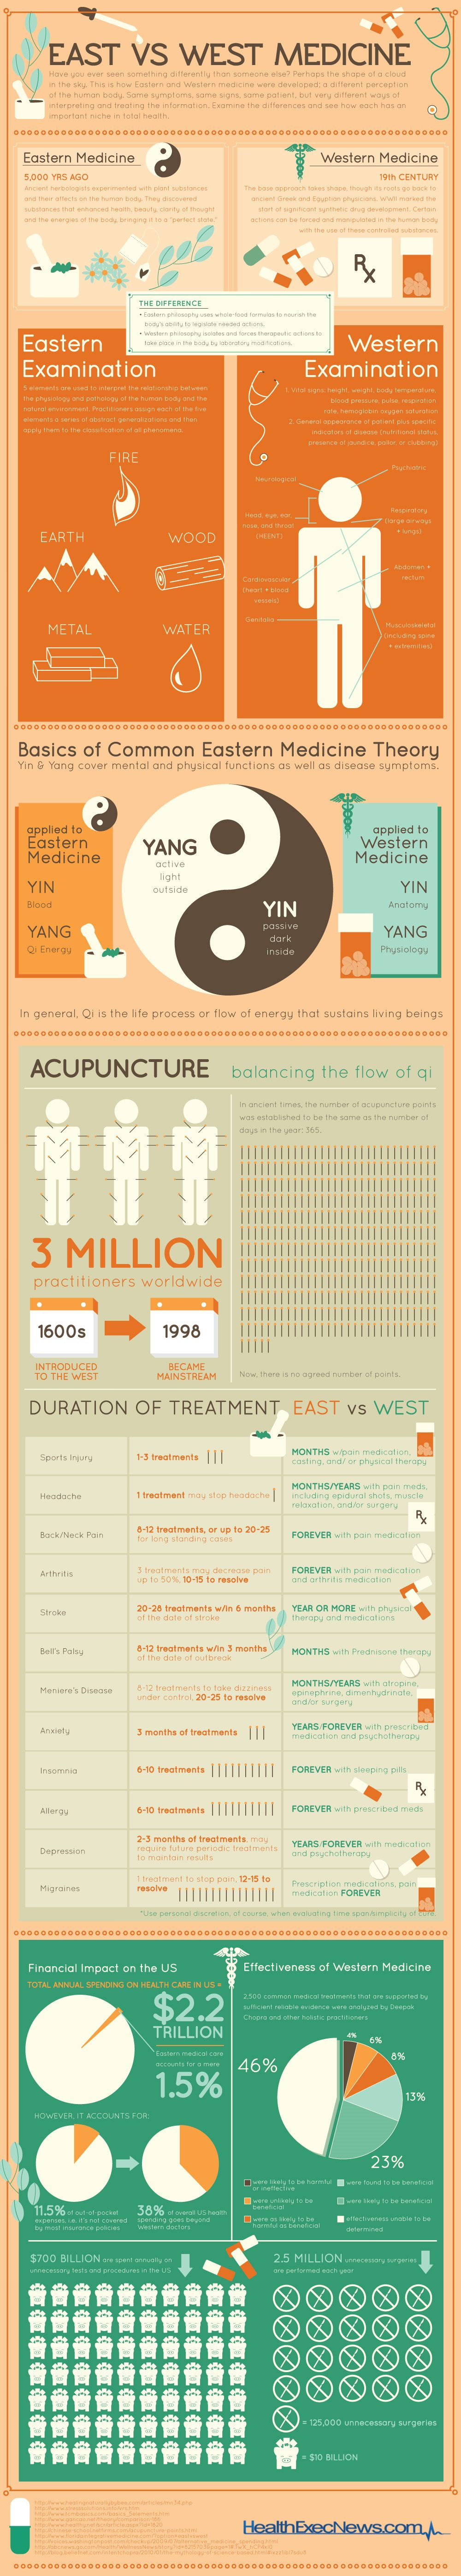 East vs West Medicine Infographic